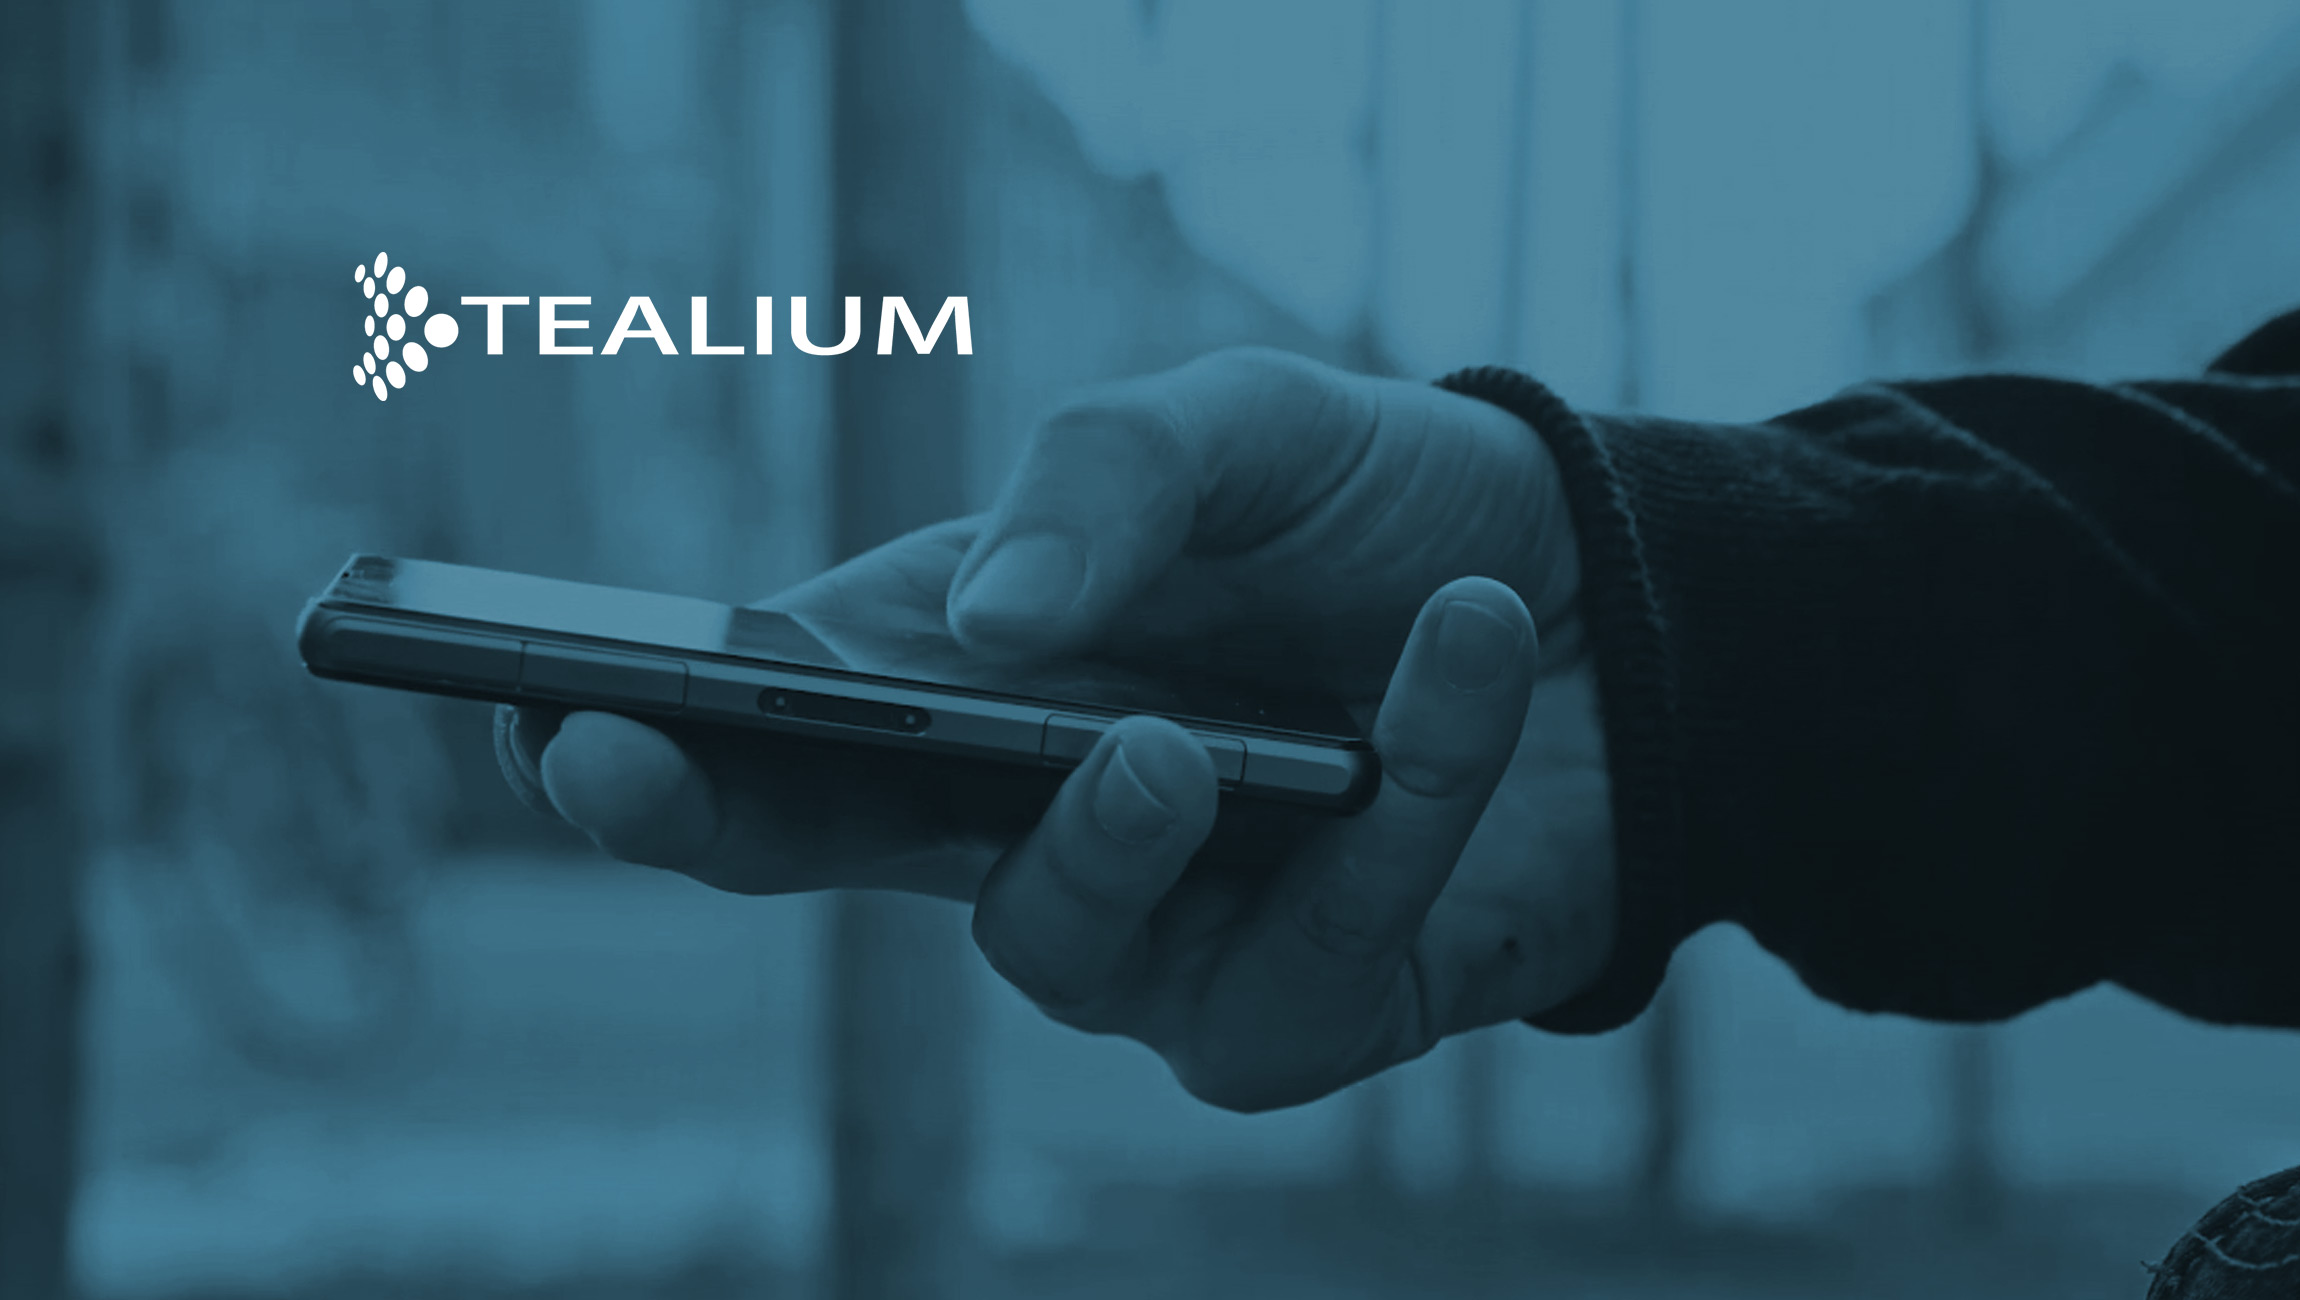 Tealium AudienceStream is the market-leading Customer Data Platform (CDP), combining robust audience management and data enrichment capabilities, resulting in unified customer profiles and the ability to take immediate, relevant action.